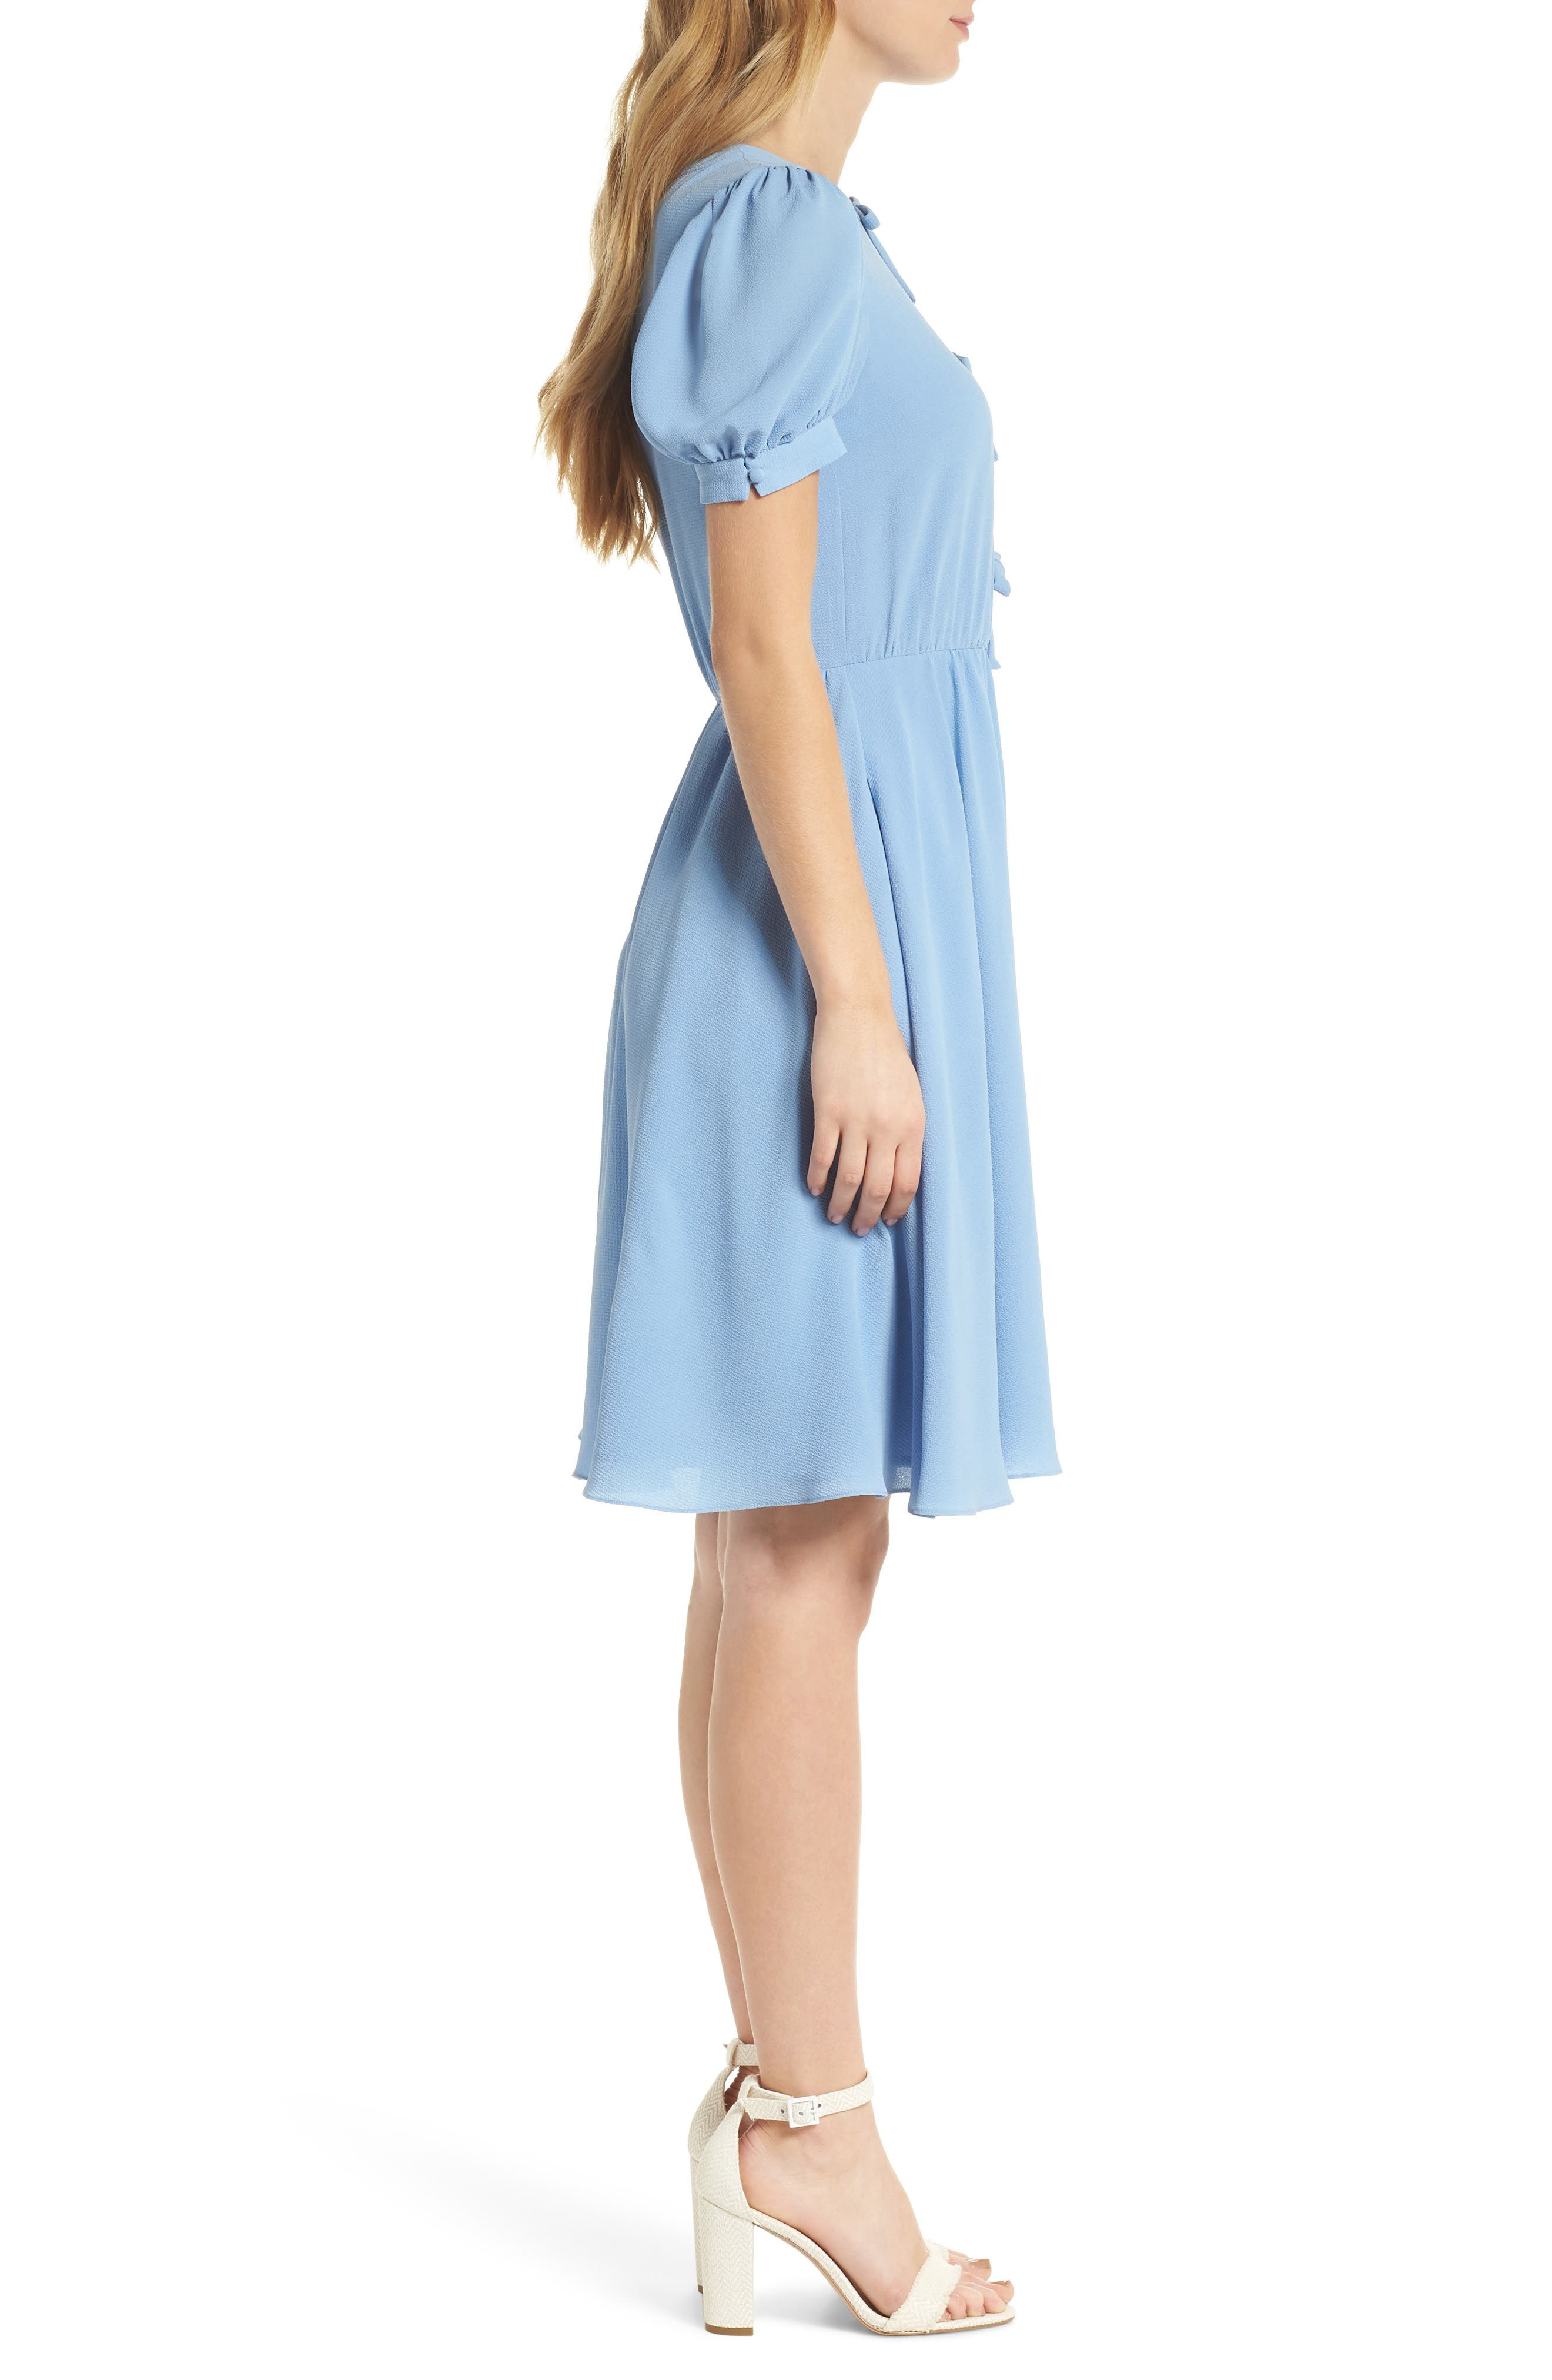 Ellie Crepe Puff Sleeve Dress,                             Alternate thumbnail 4, color,                             Sky Blue